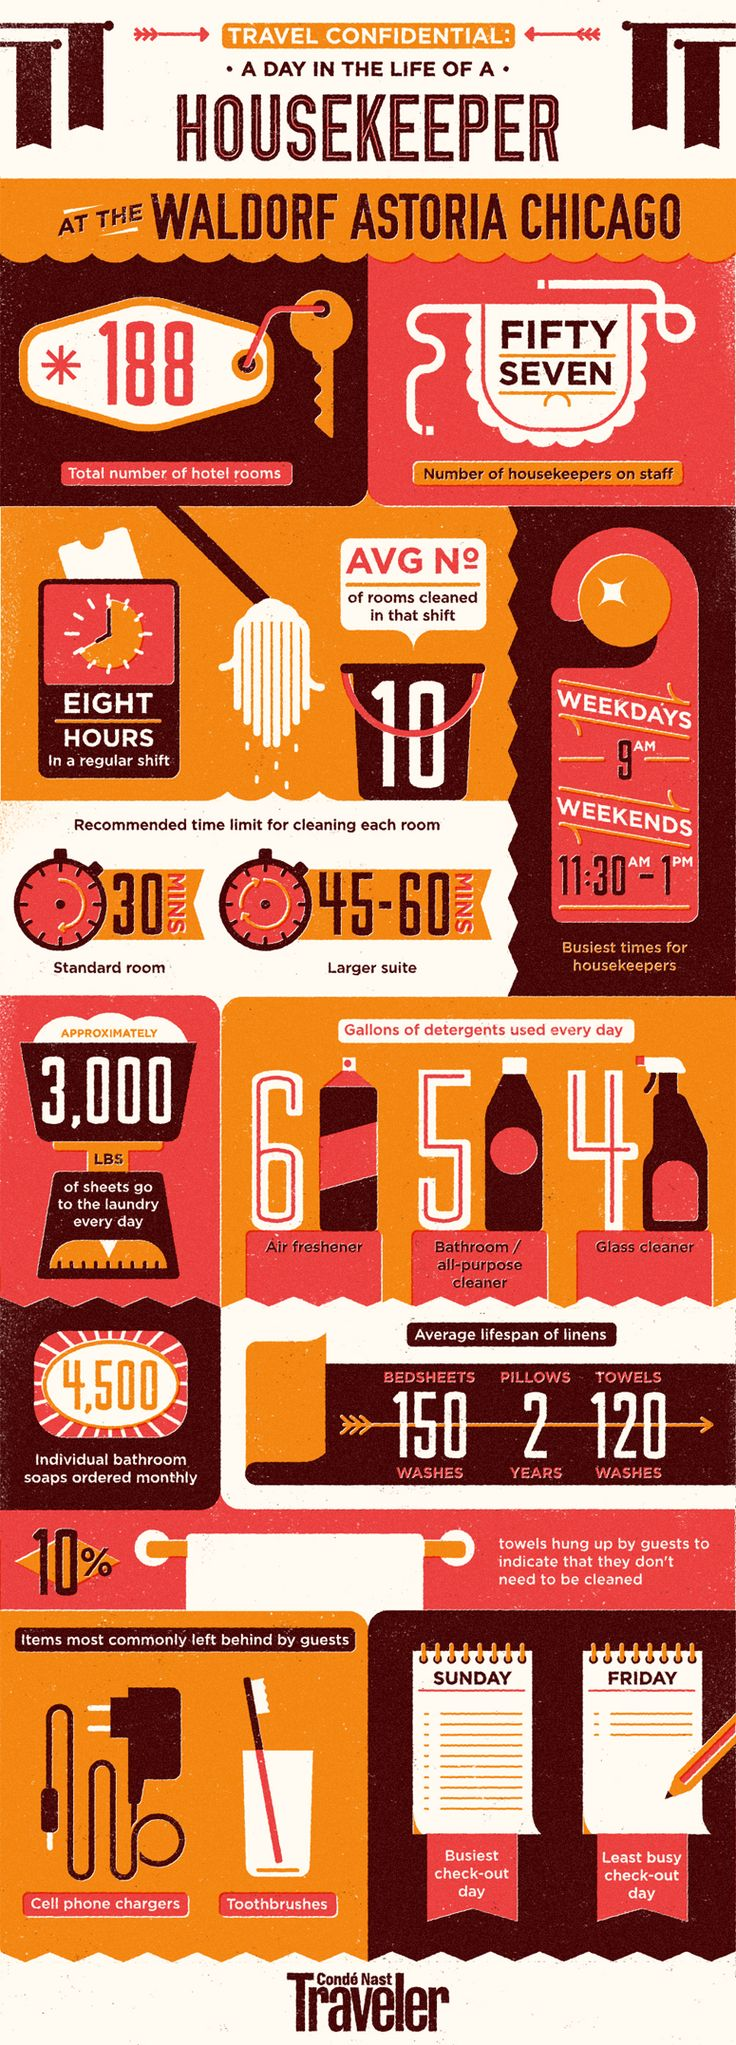 Infographic: A Day in the Life of a Housekeeper at the Waldorf Astoria Chicago - Klara Glowczewska, our editor in chief, fluffed pillows and scrubbed tubs for a day as an undercover housekeeper at the Waldorf Astoria Chicago. Her lesson: An eight-hour shift is not for the weak. Survey the numbers for proof.